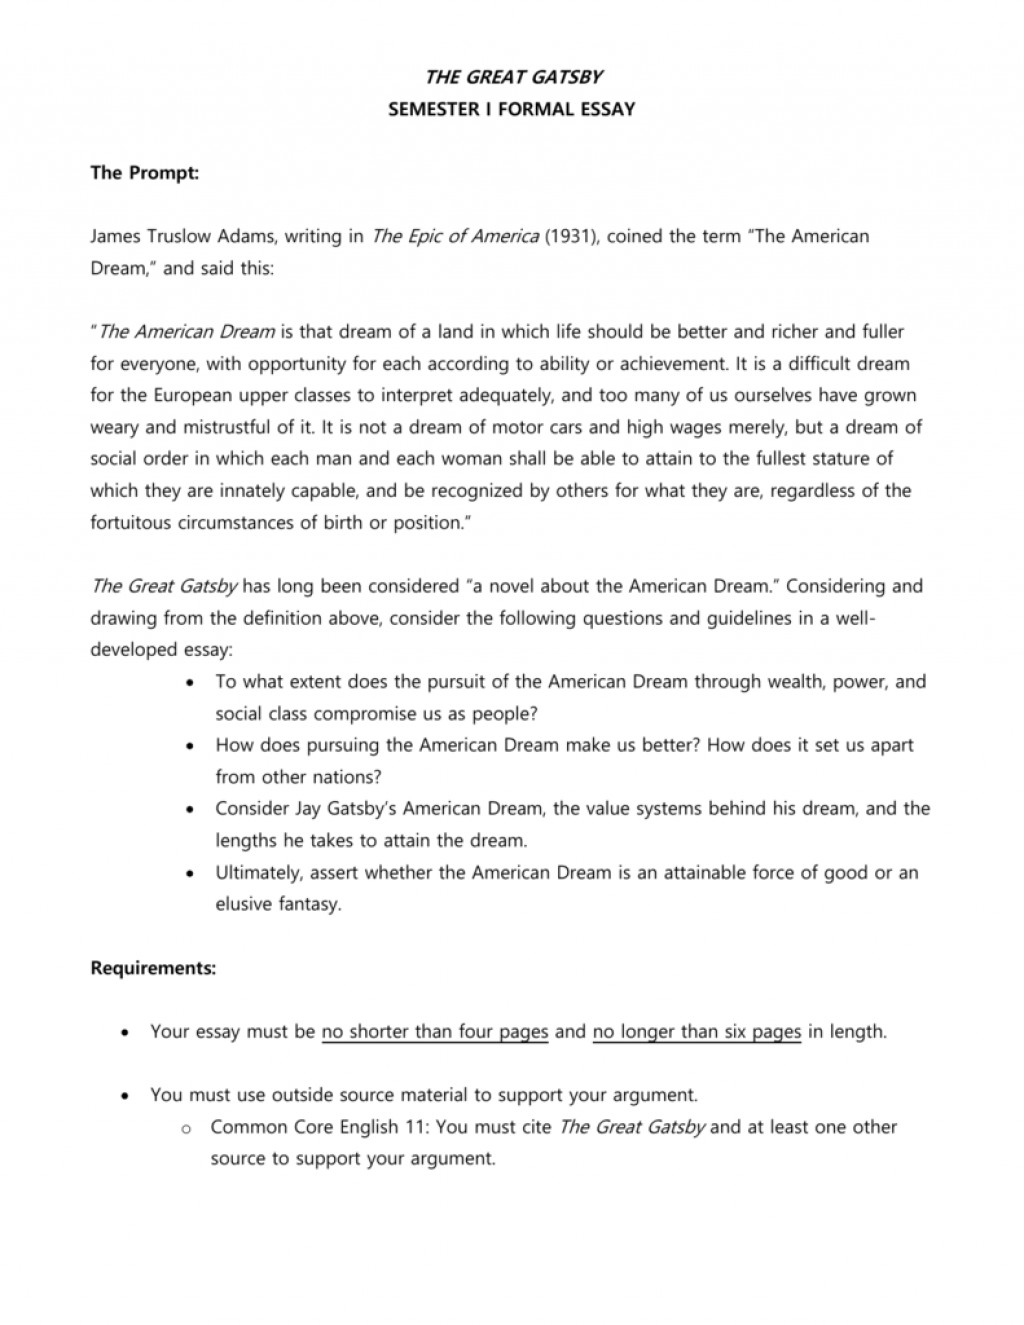 010 Great Gatsby American Dream Essay 007181178 1 Fantastic Conclusion The Pdf Free Large